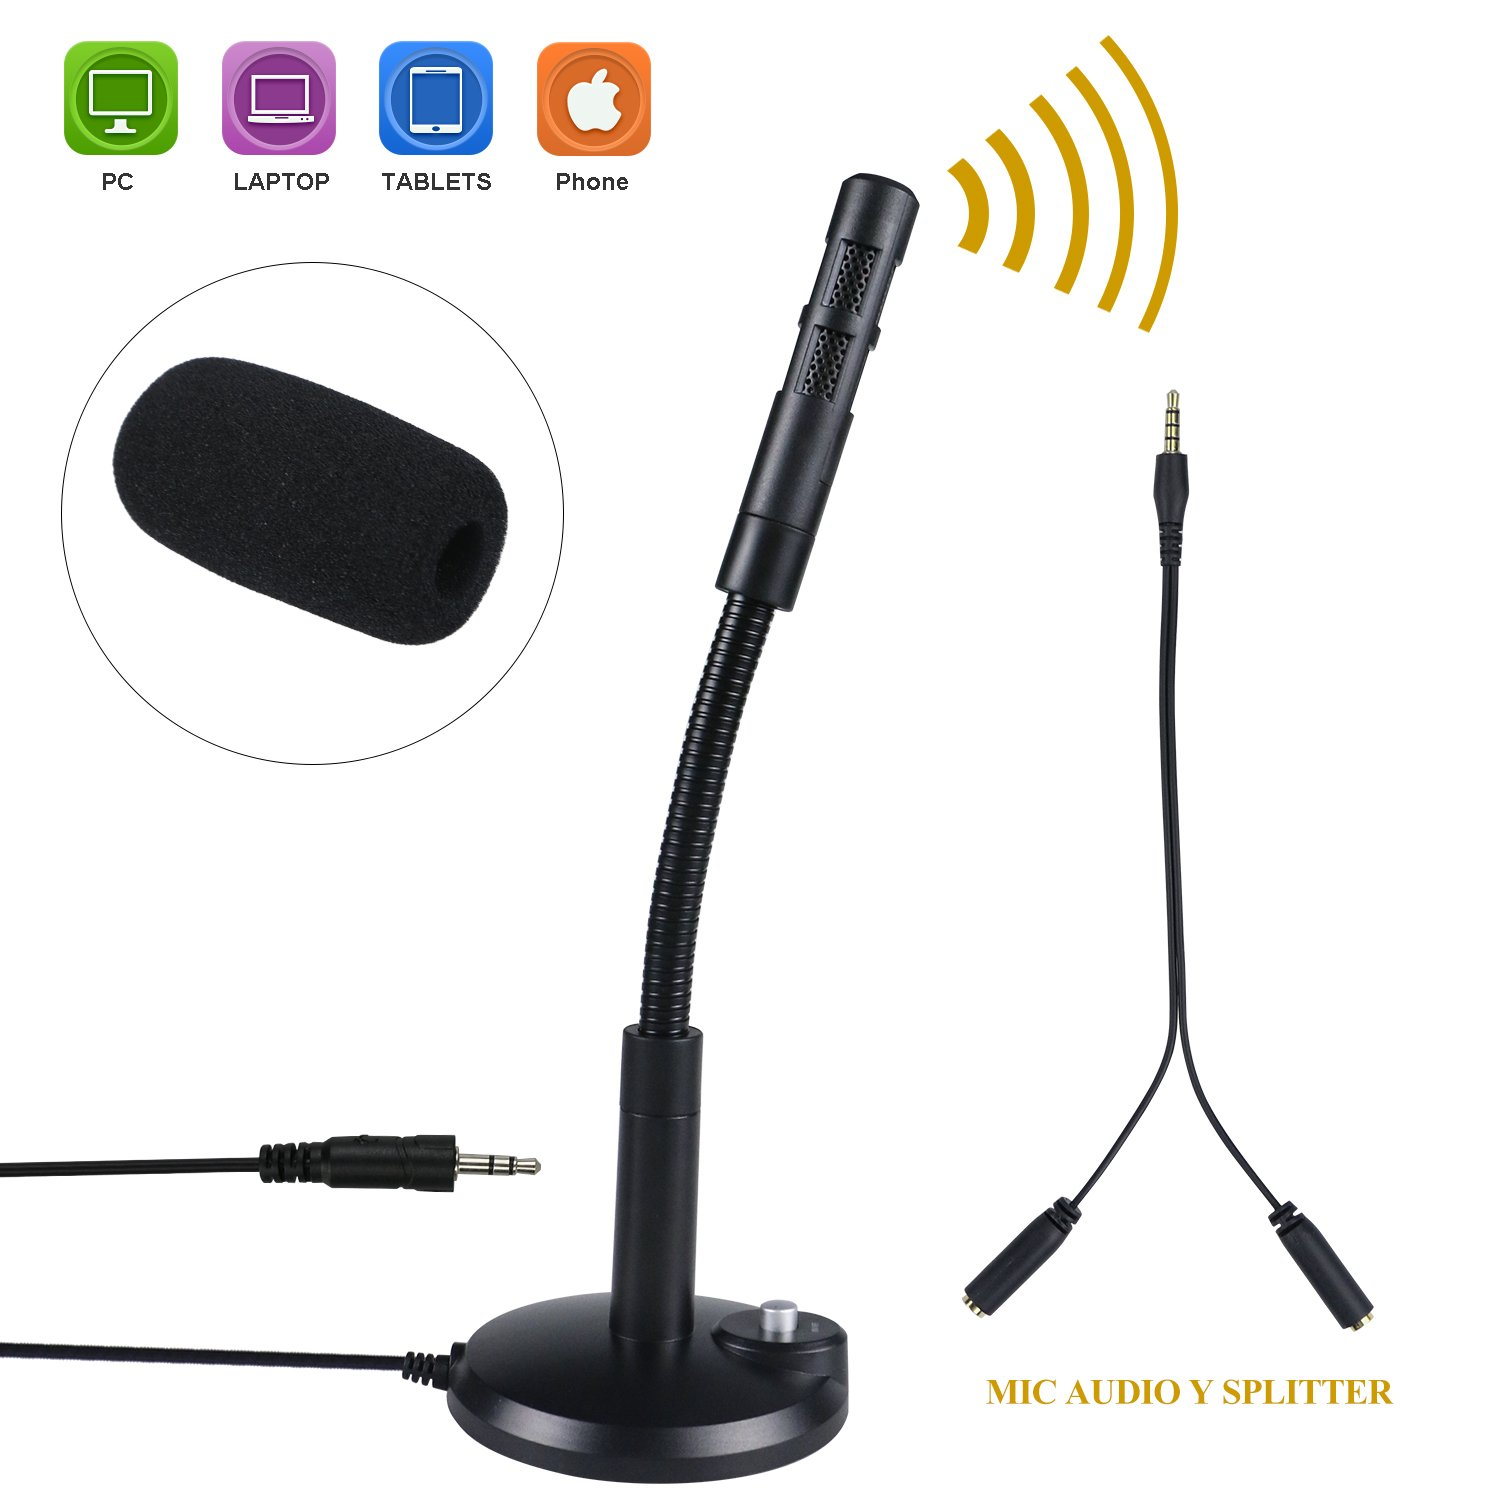 Philonext Condenser Microphone, Portable Mini Condenser Microphone, 3.5mm Plug & Play Home Studio Vocal Recording Microphone with Tripod Stand for PC Laptop Tablet and Phone (Black) Philonext Direct